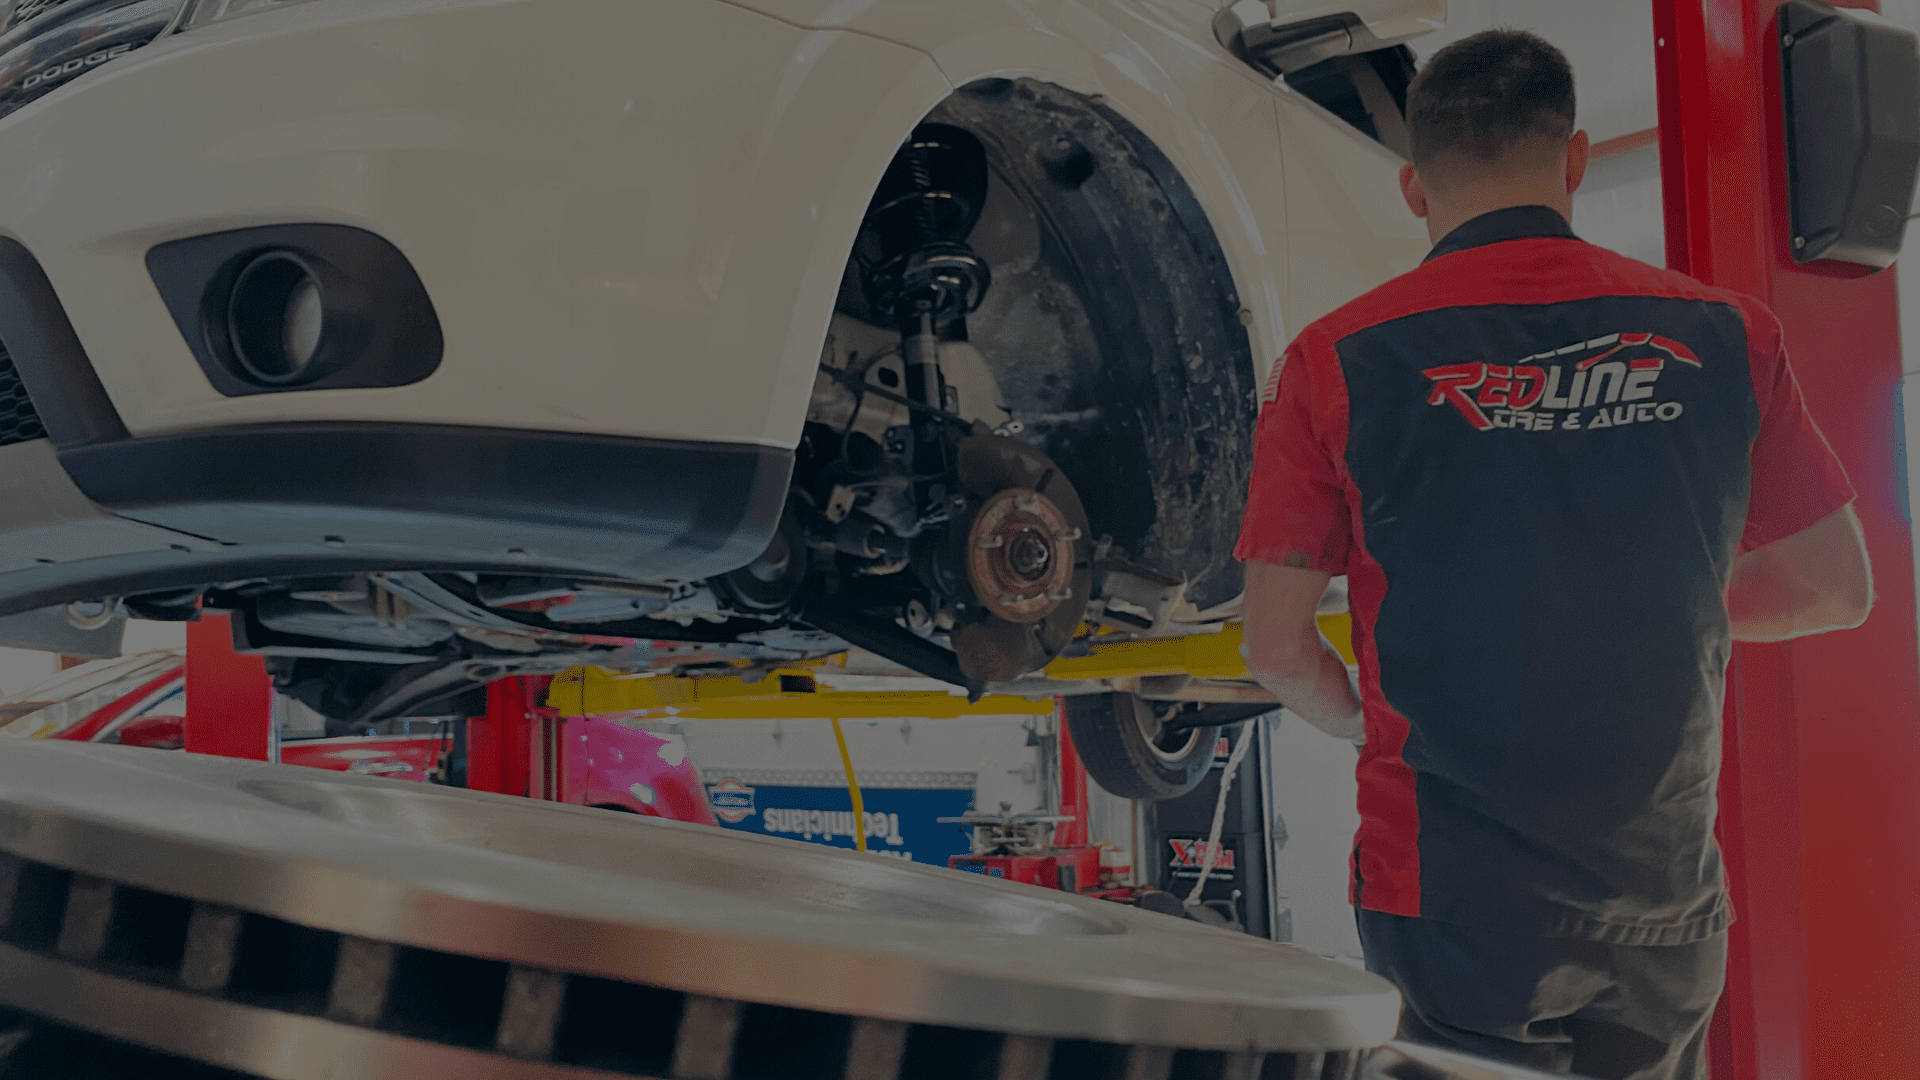 redline tire and auto employee performing brake repairs